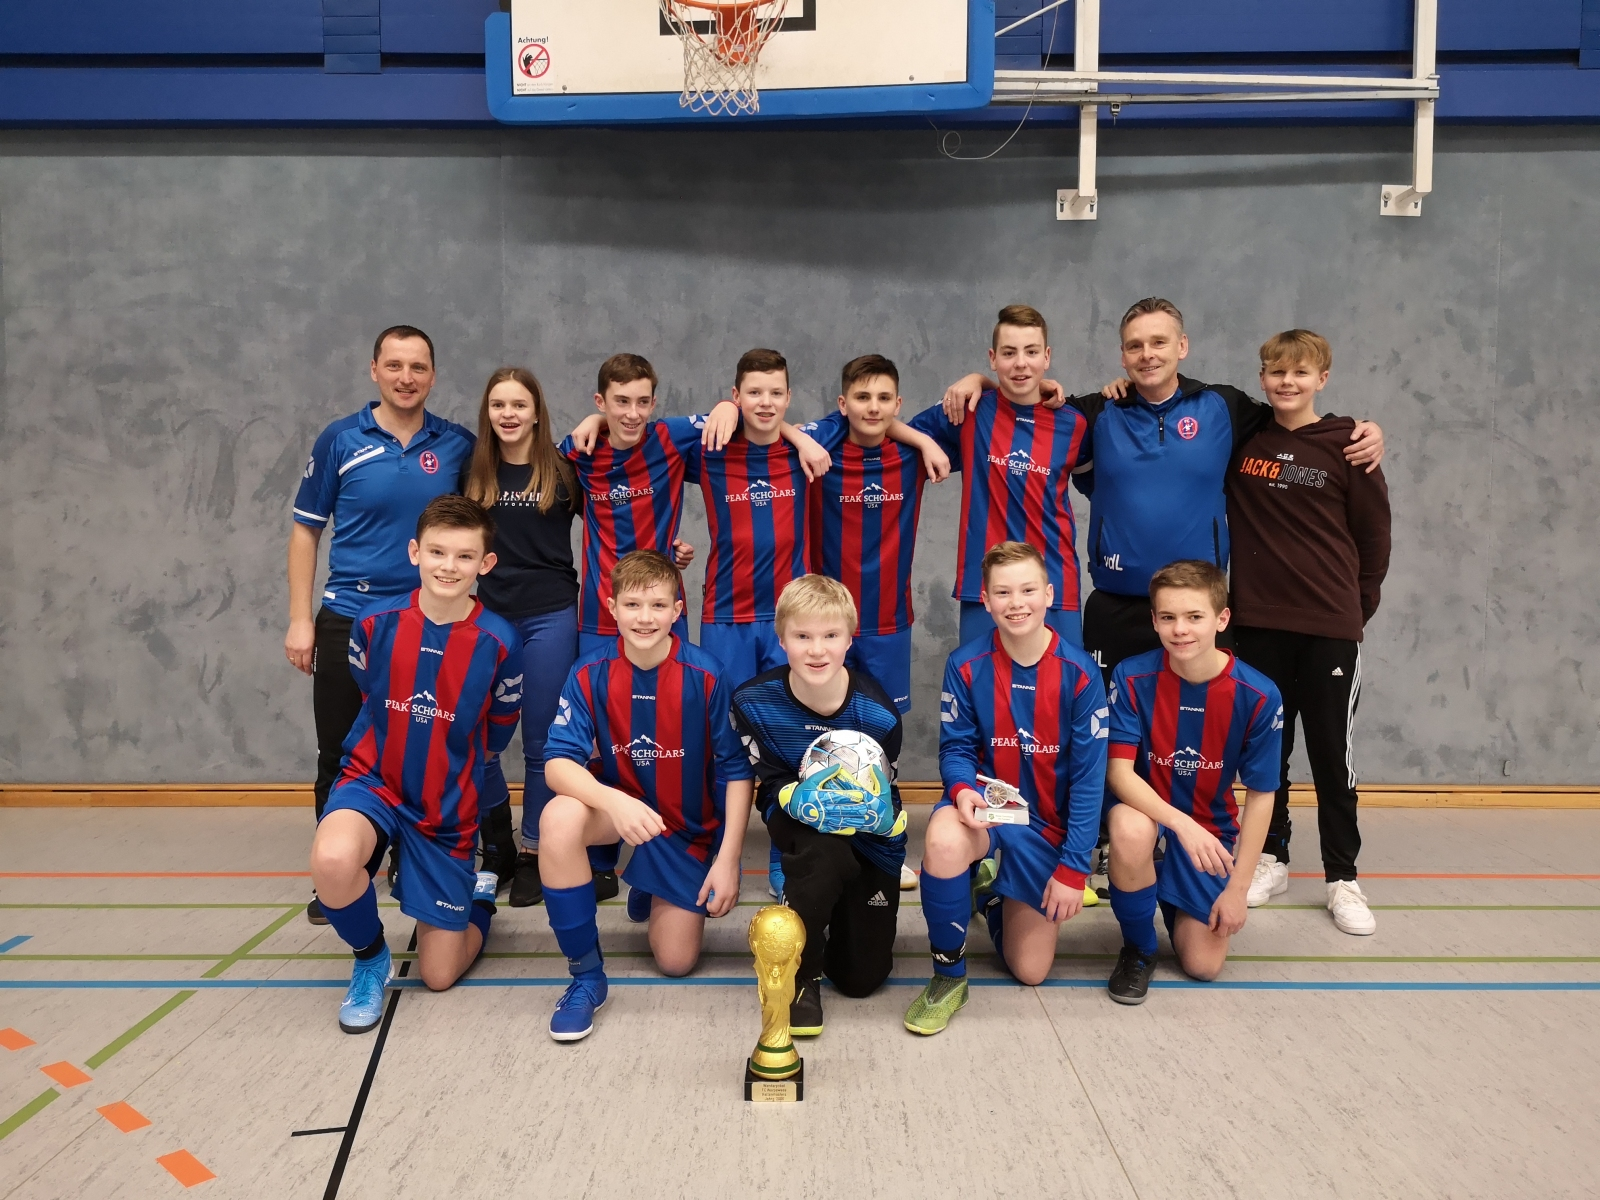 U14 – Turniersieg in Worpswede